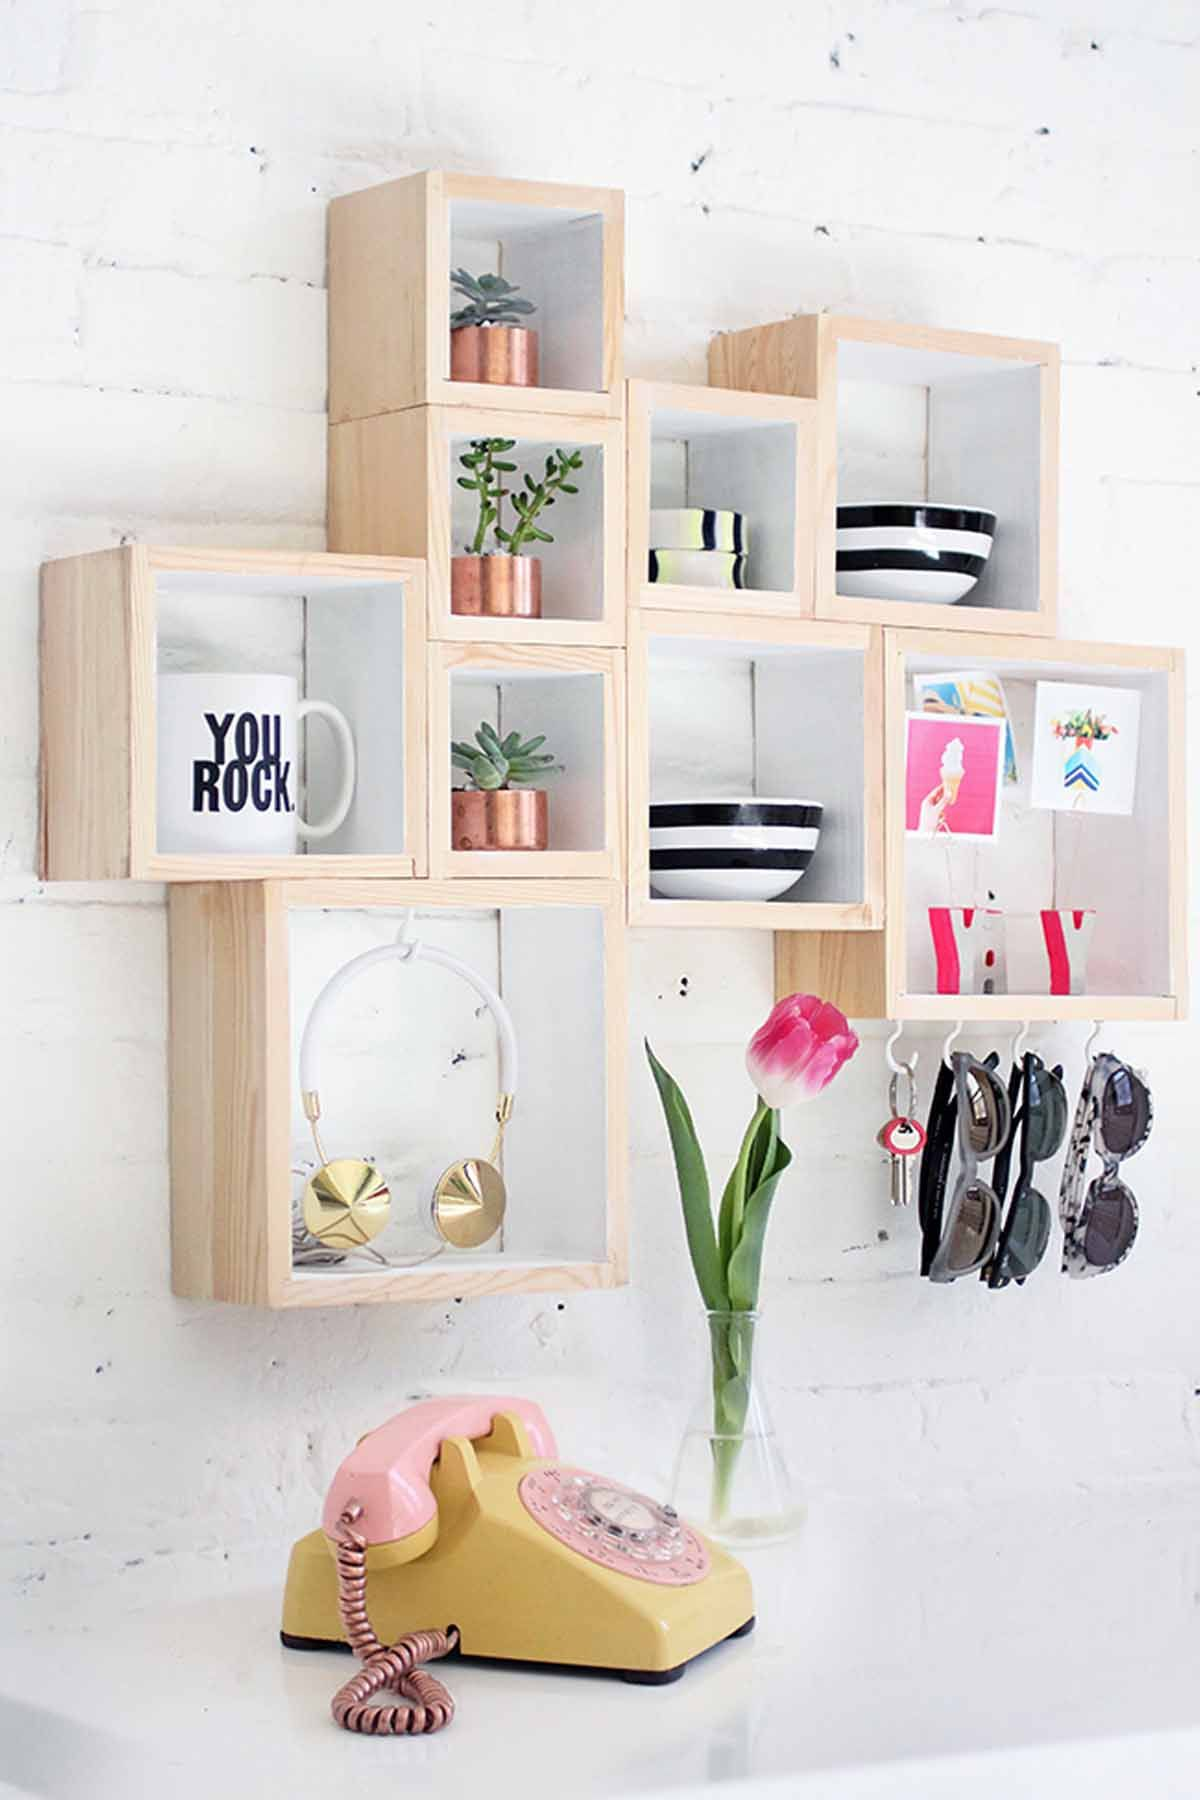 20 Easy Ways to Organize Your Bedroom | Storage, Organizations and ...